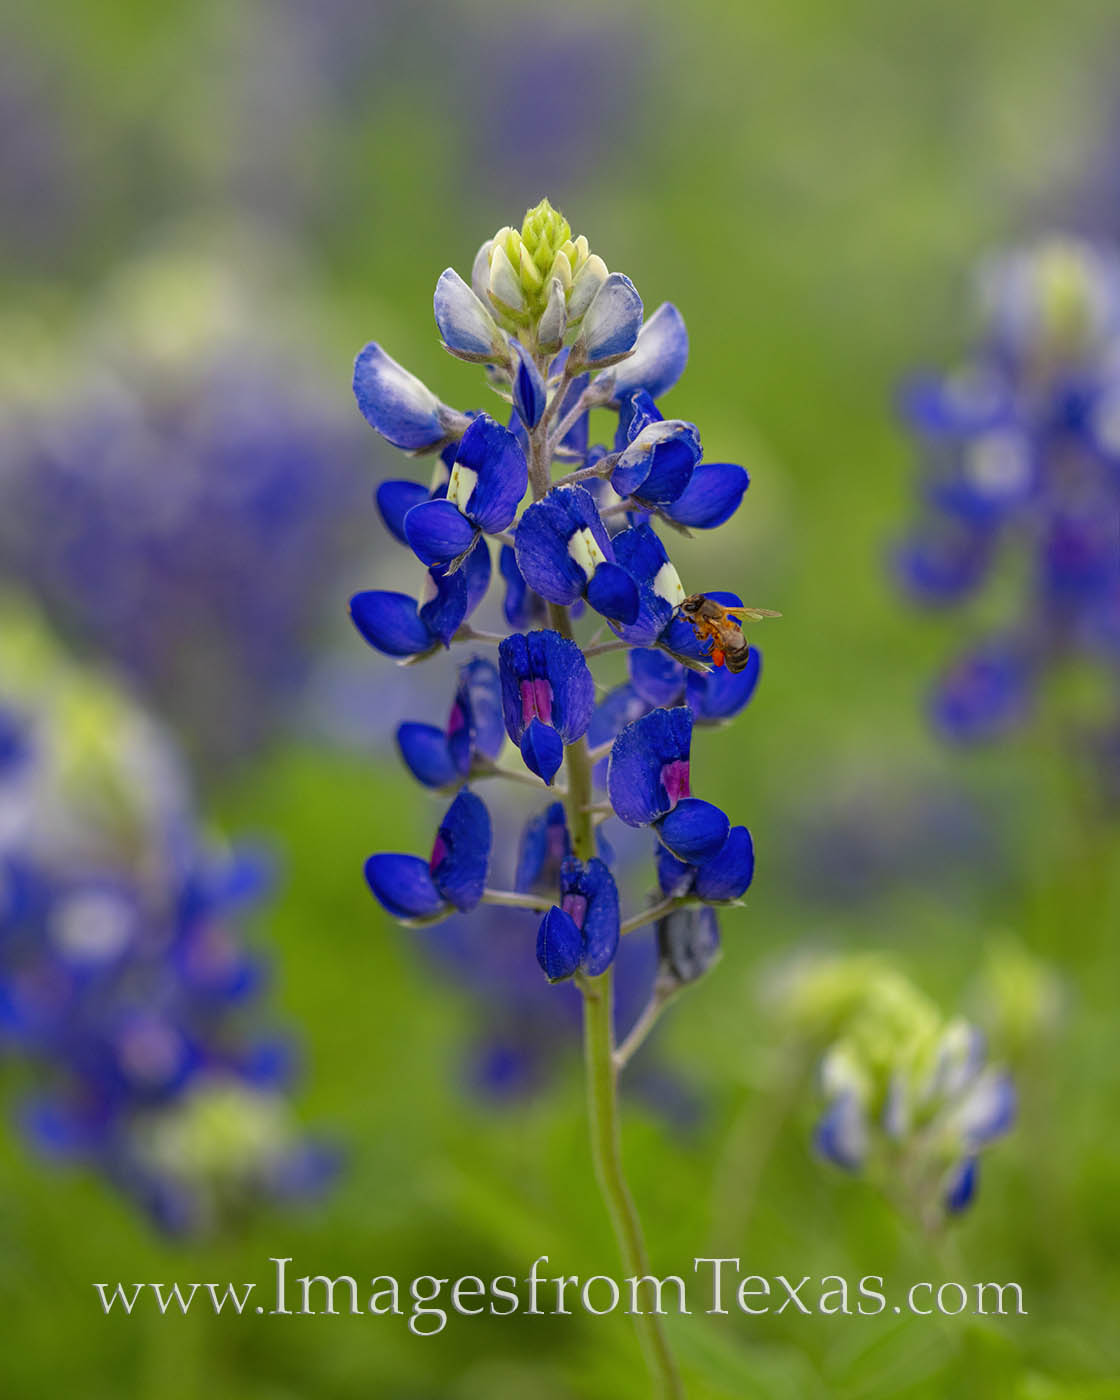 bluebonnets, bees, wildflowers, hill country, macro, photo